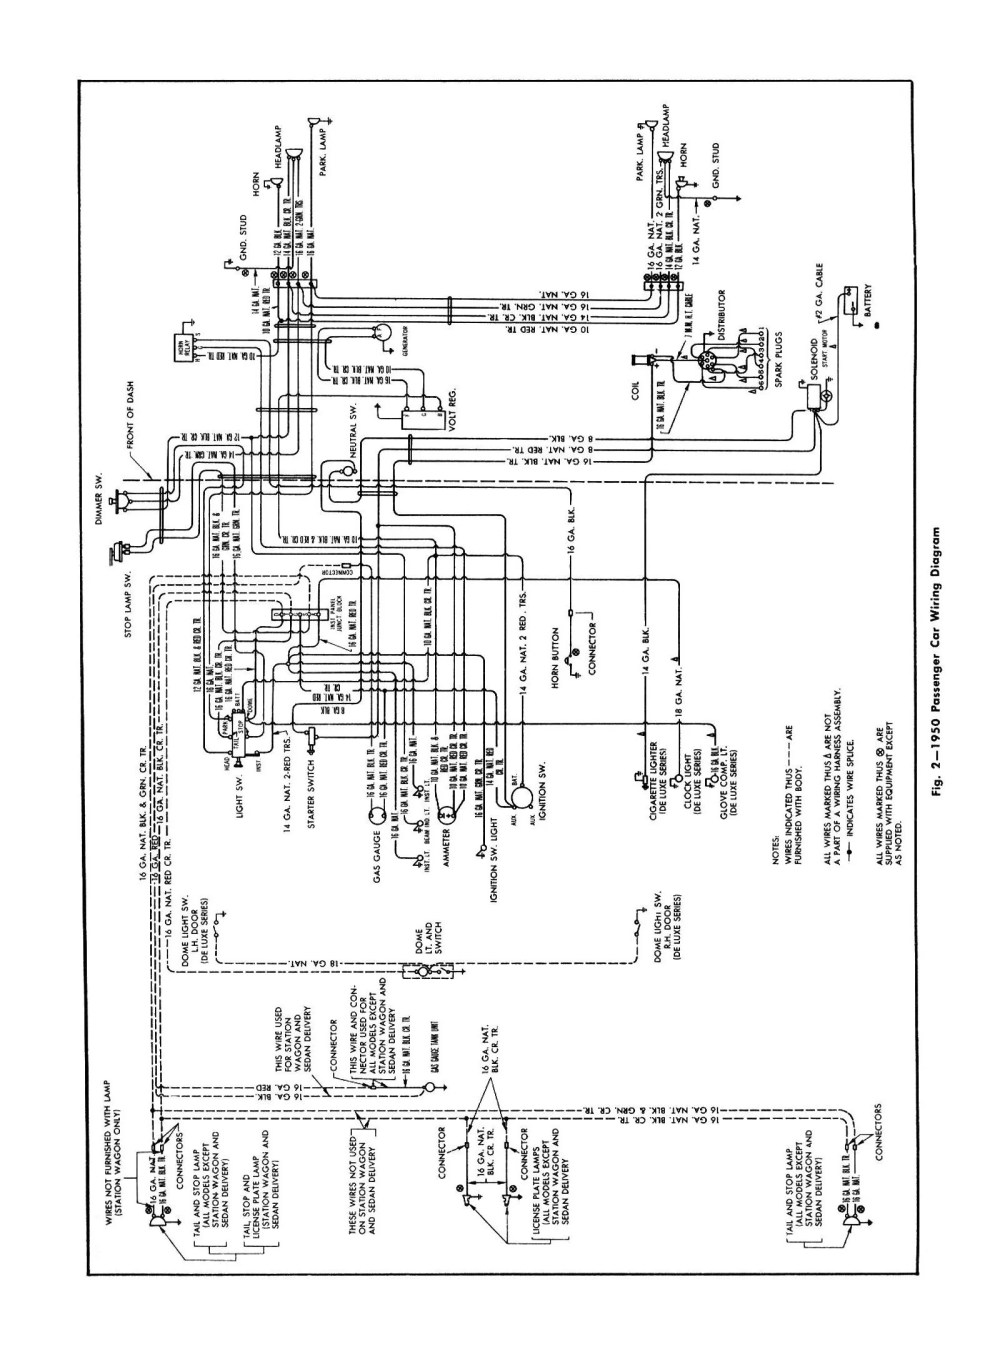 medium resolution of 1949 chevy wiring diagram wiring diagram centre wiring diagram on 1950 chevy truck color get free image about wiring